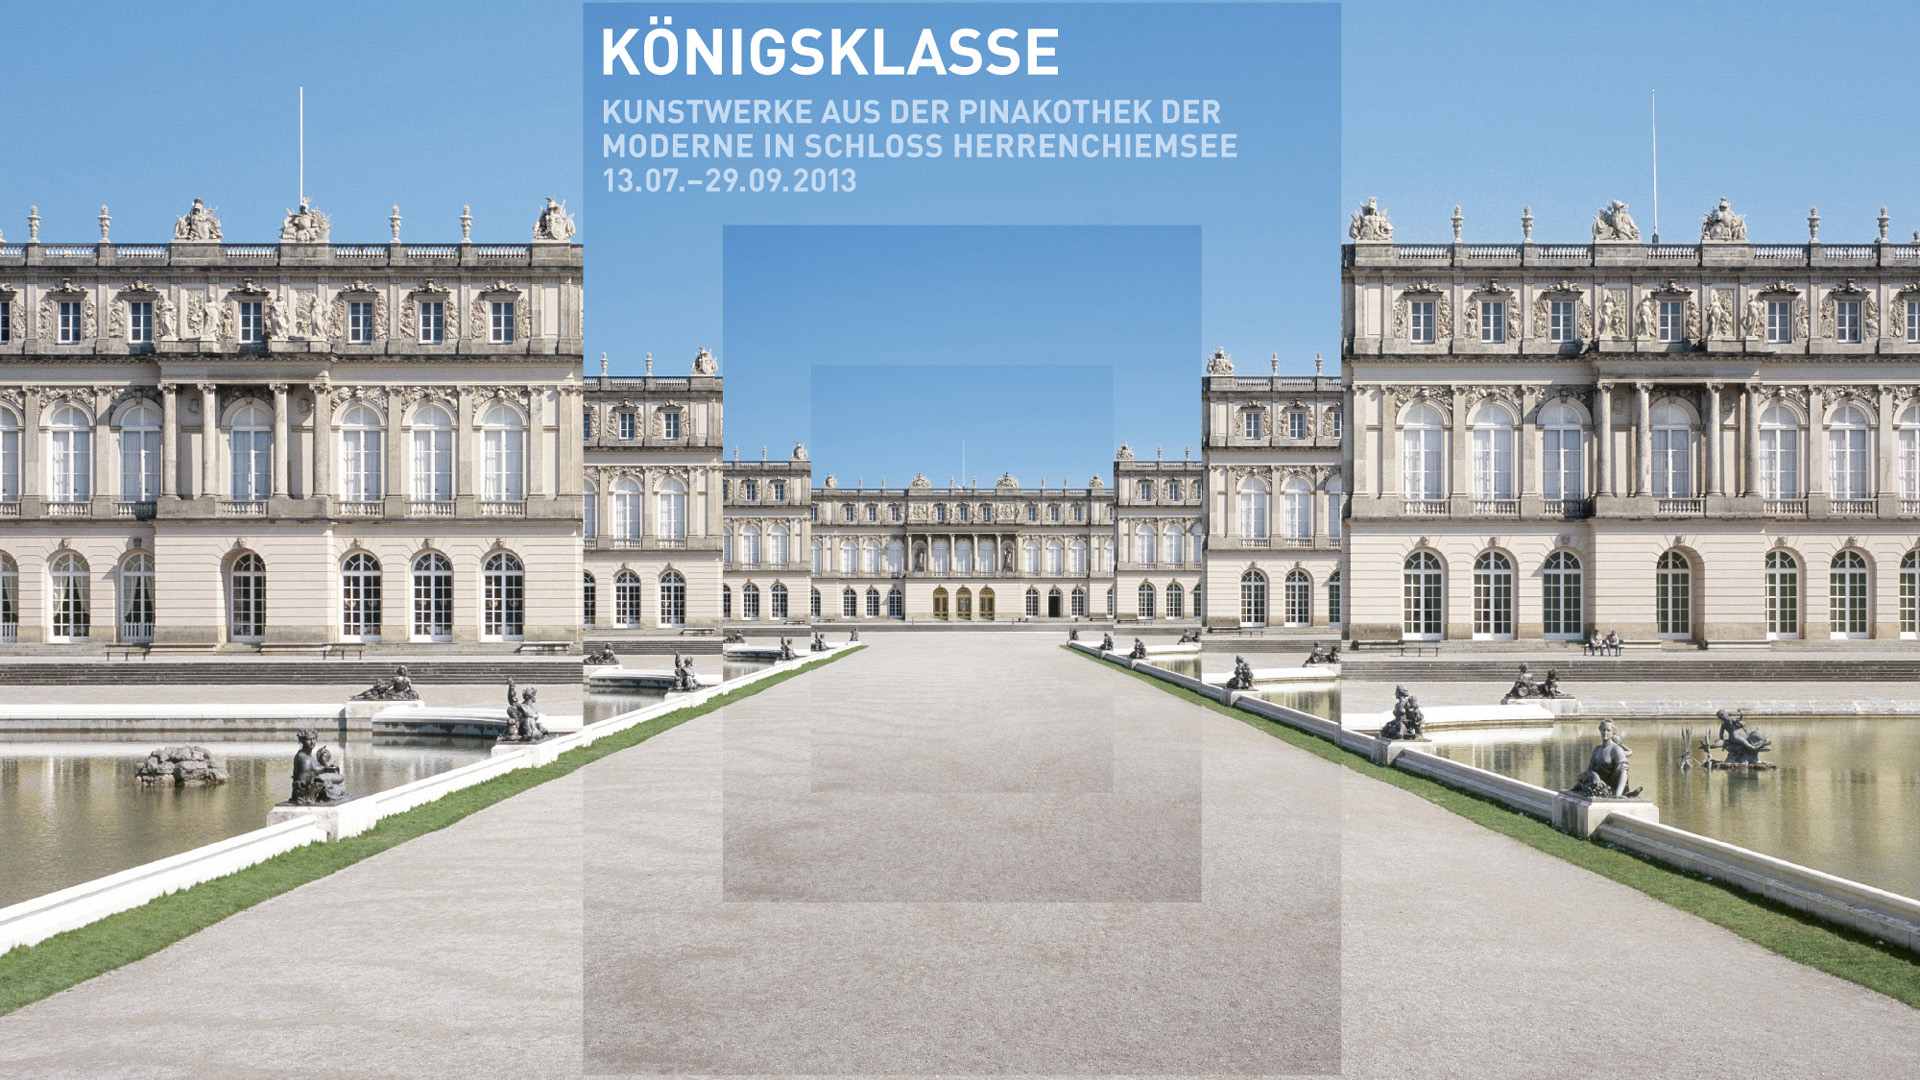 The appearance of the Königsklasse 2013 at Schloss Herrenchiemsee.